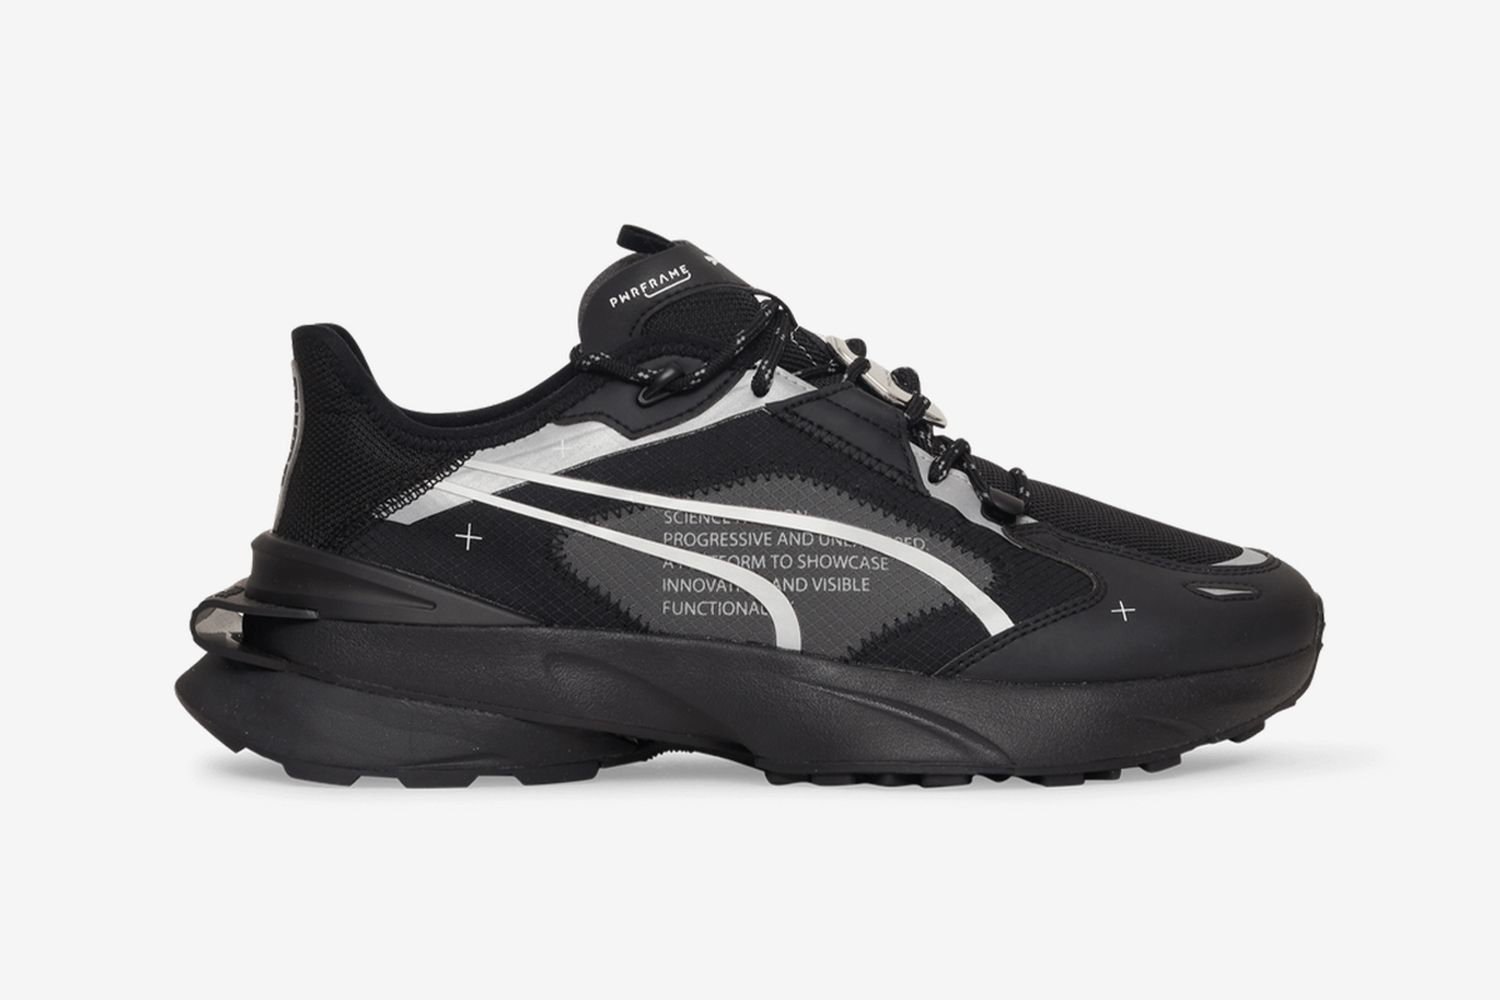 10 of the Best PUMA Sneakers to Buy in 2021